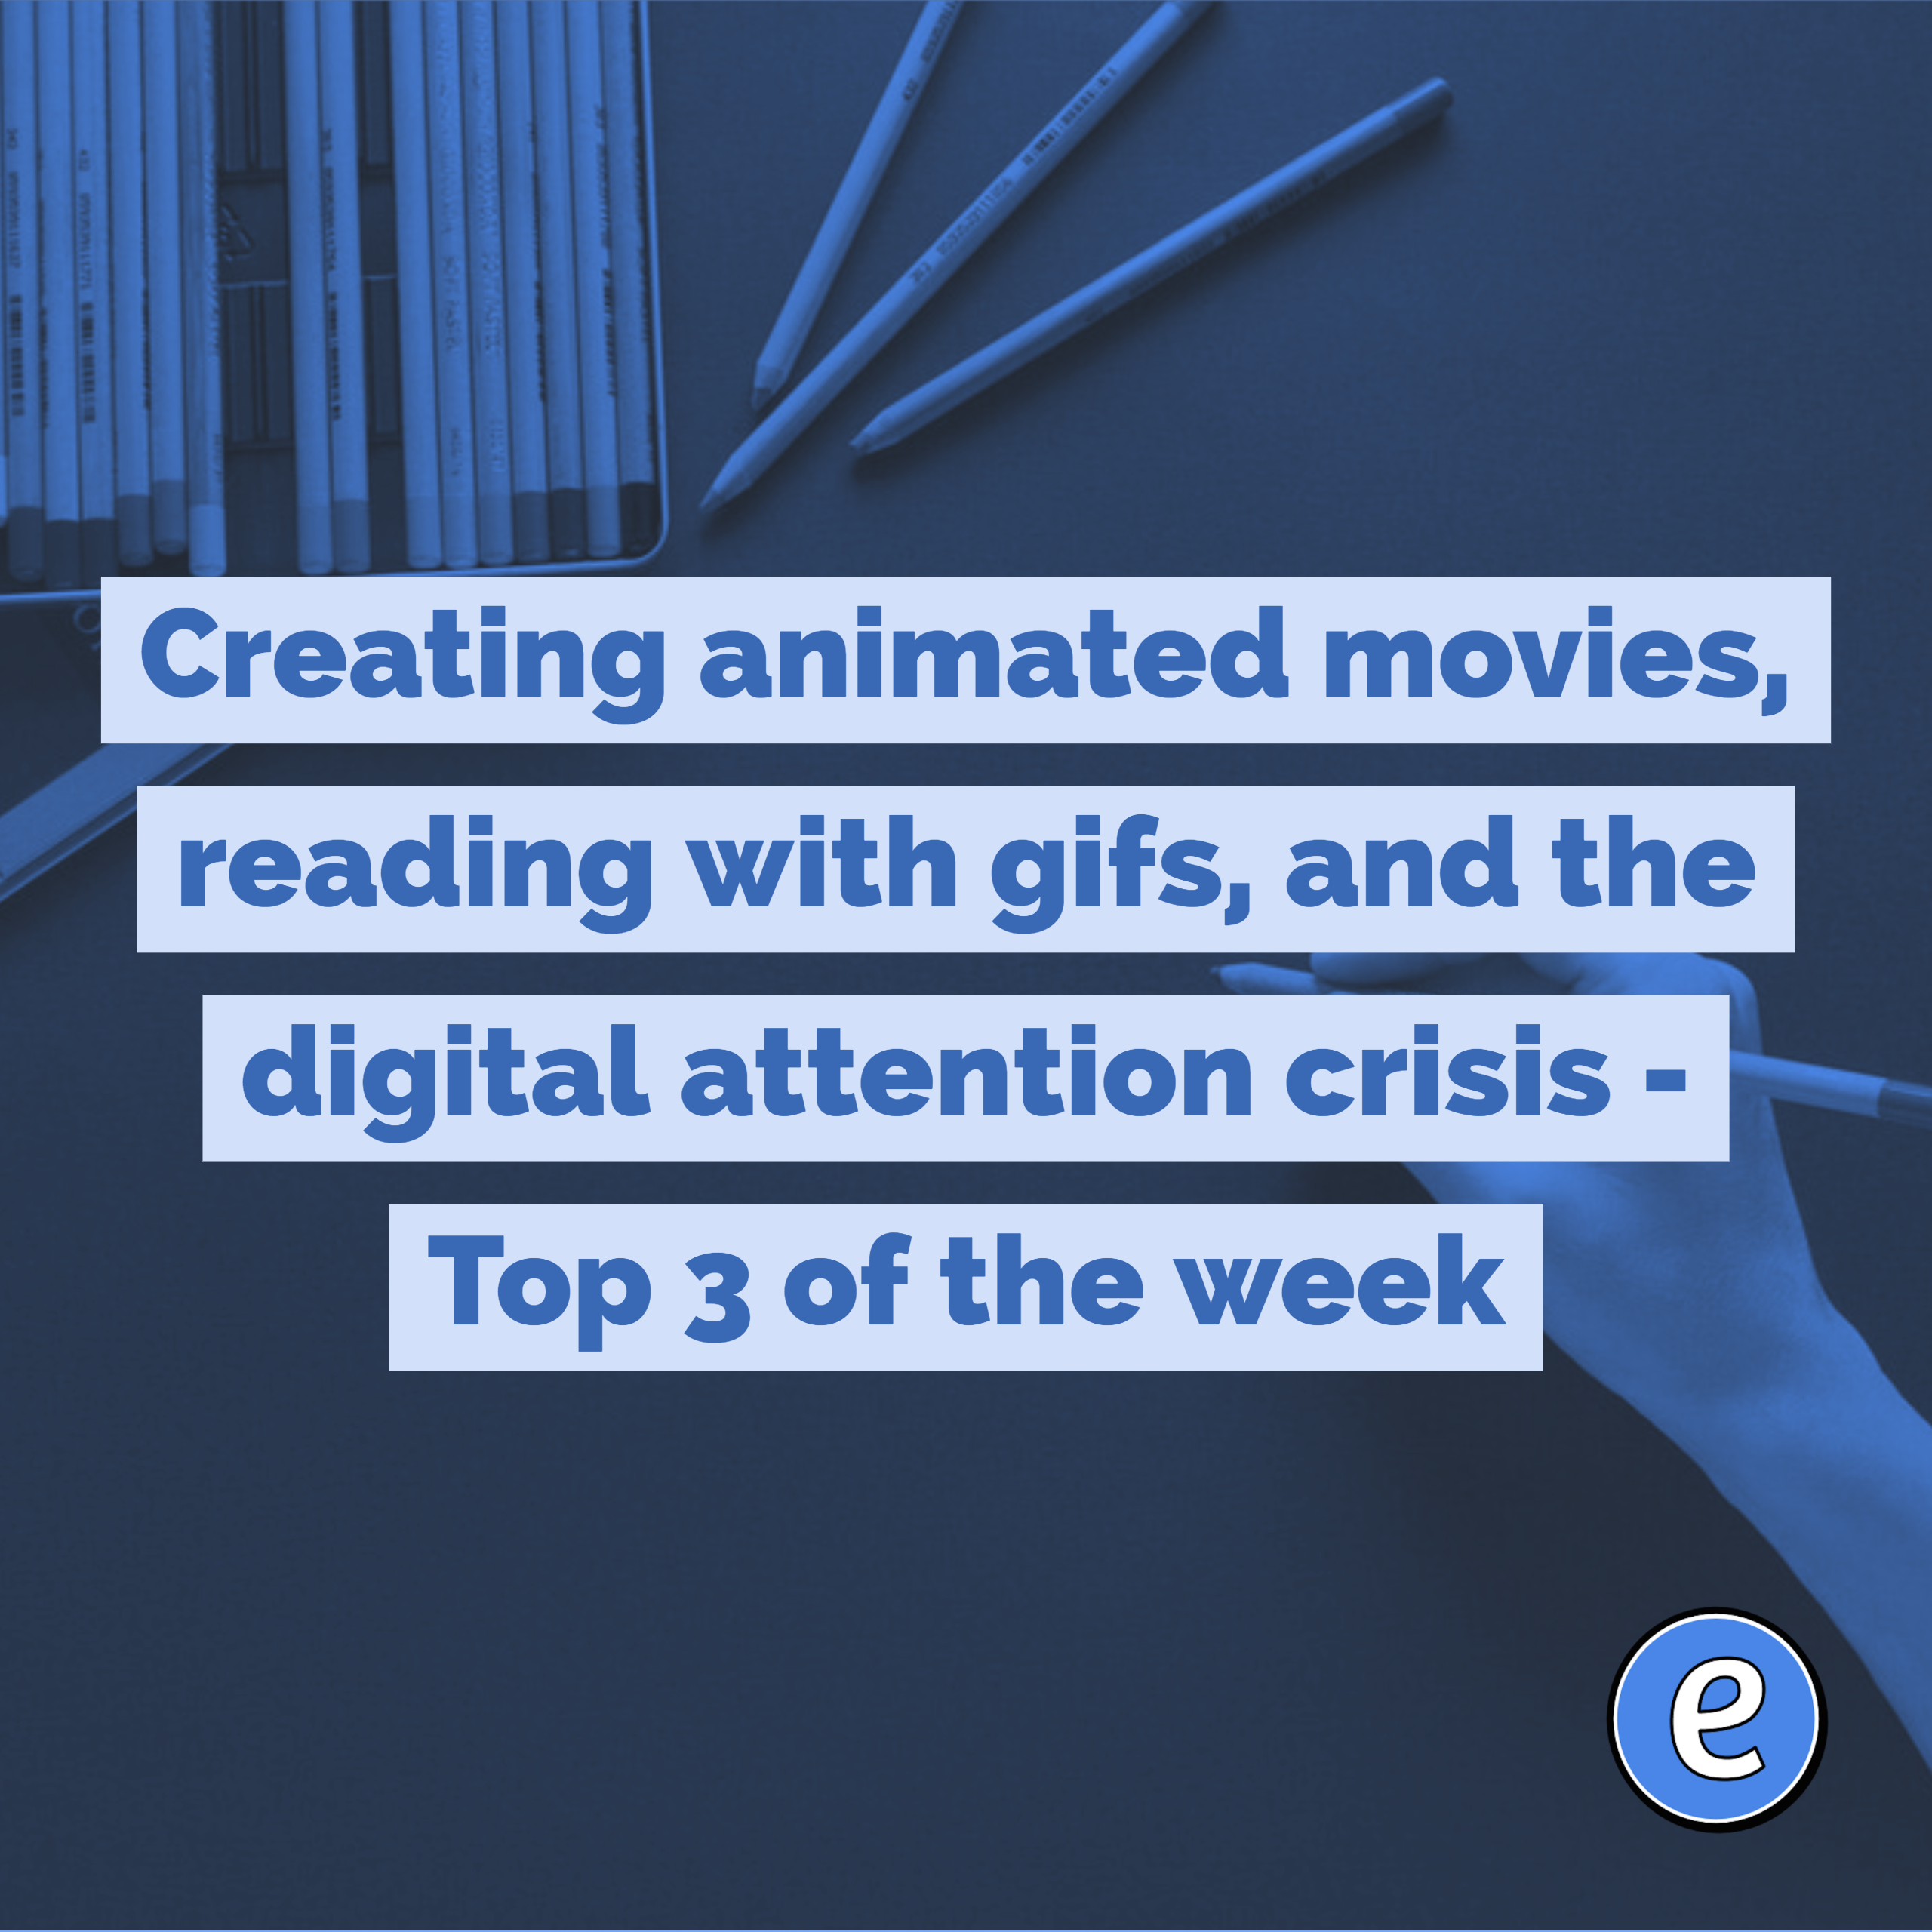 Creating animated movies, reading with gifs, and the digital attention crisis – Top 3 of the week